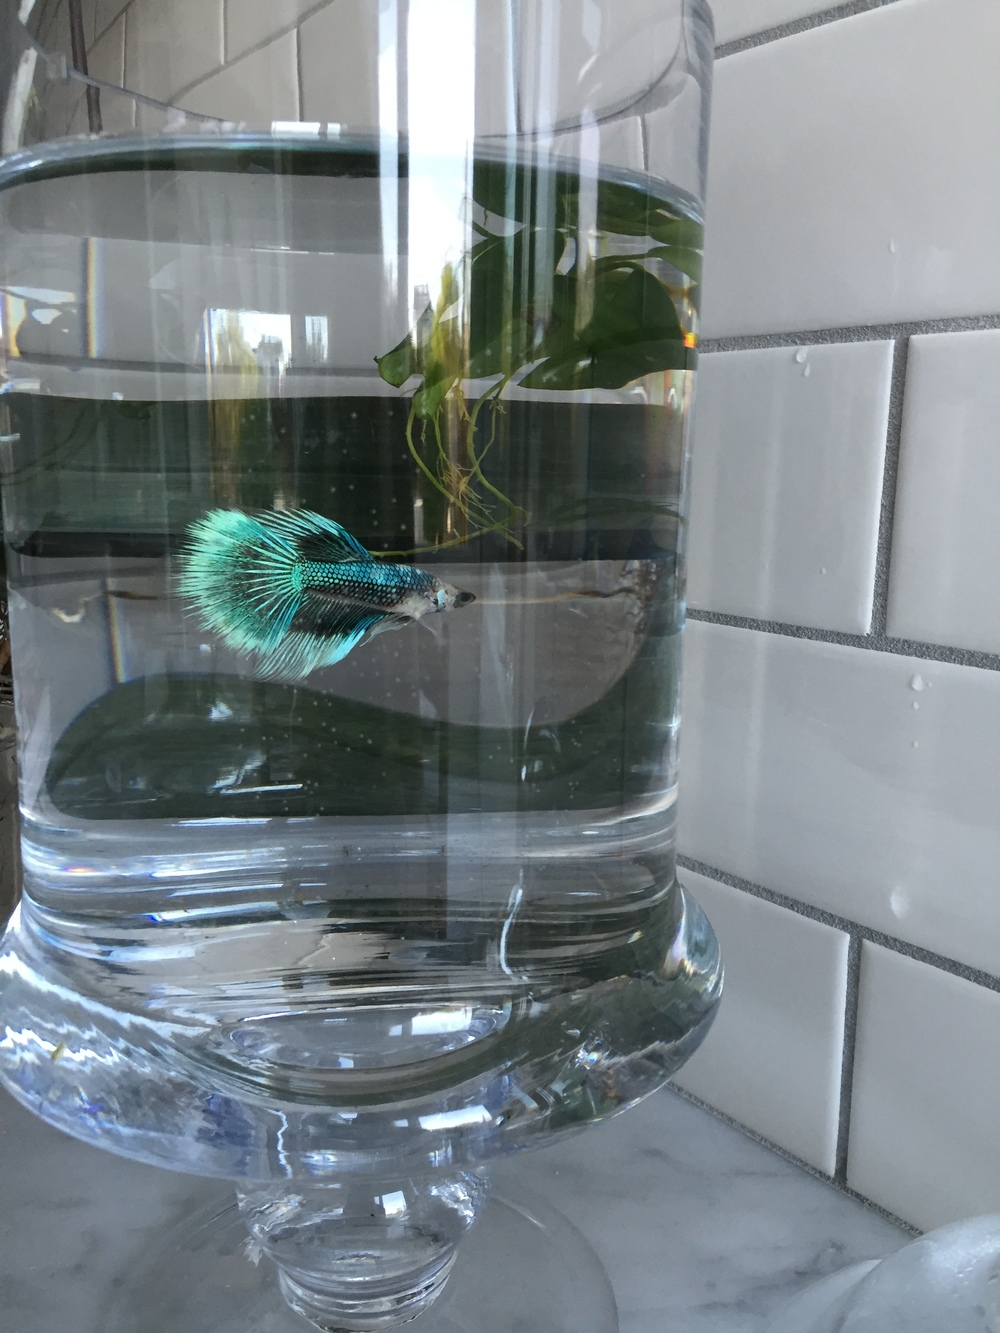 No kitchen is complete without a little fishy friend--we named Mochi in honor of the rice paddy puddles from which we learned his ancestor hail.